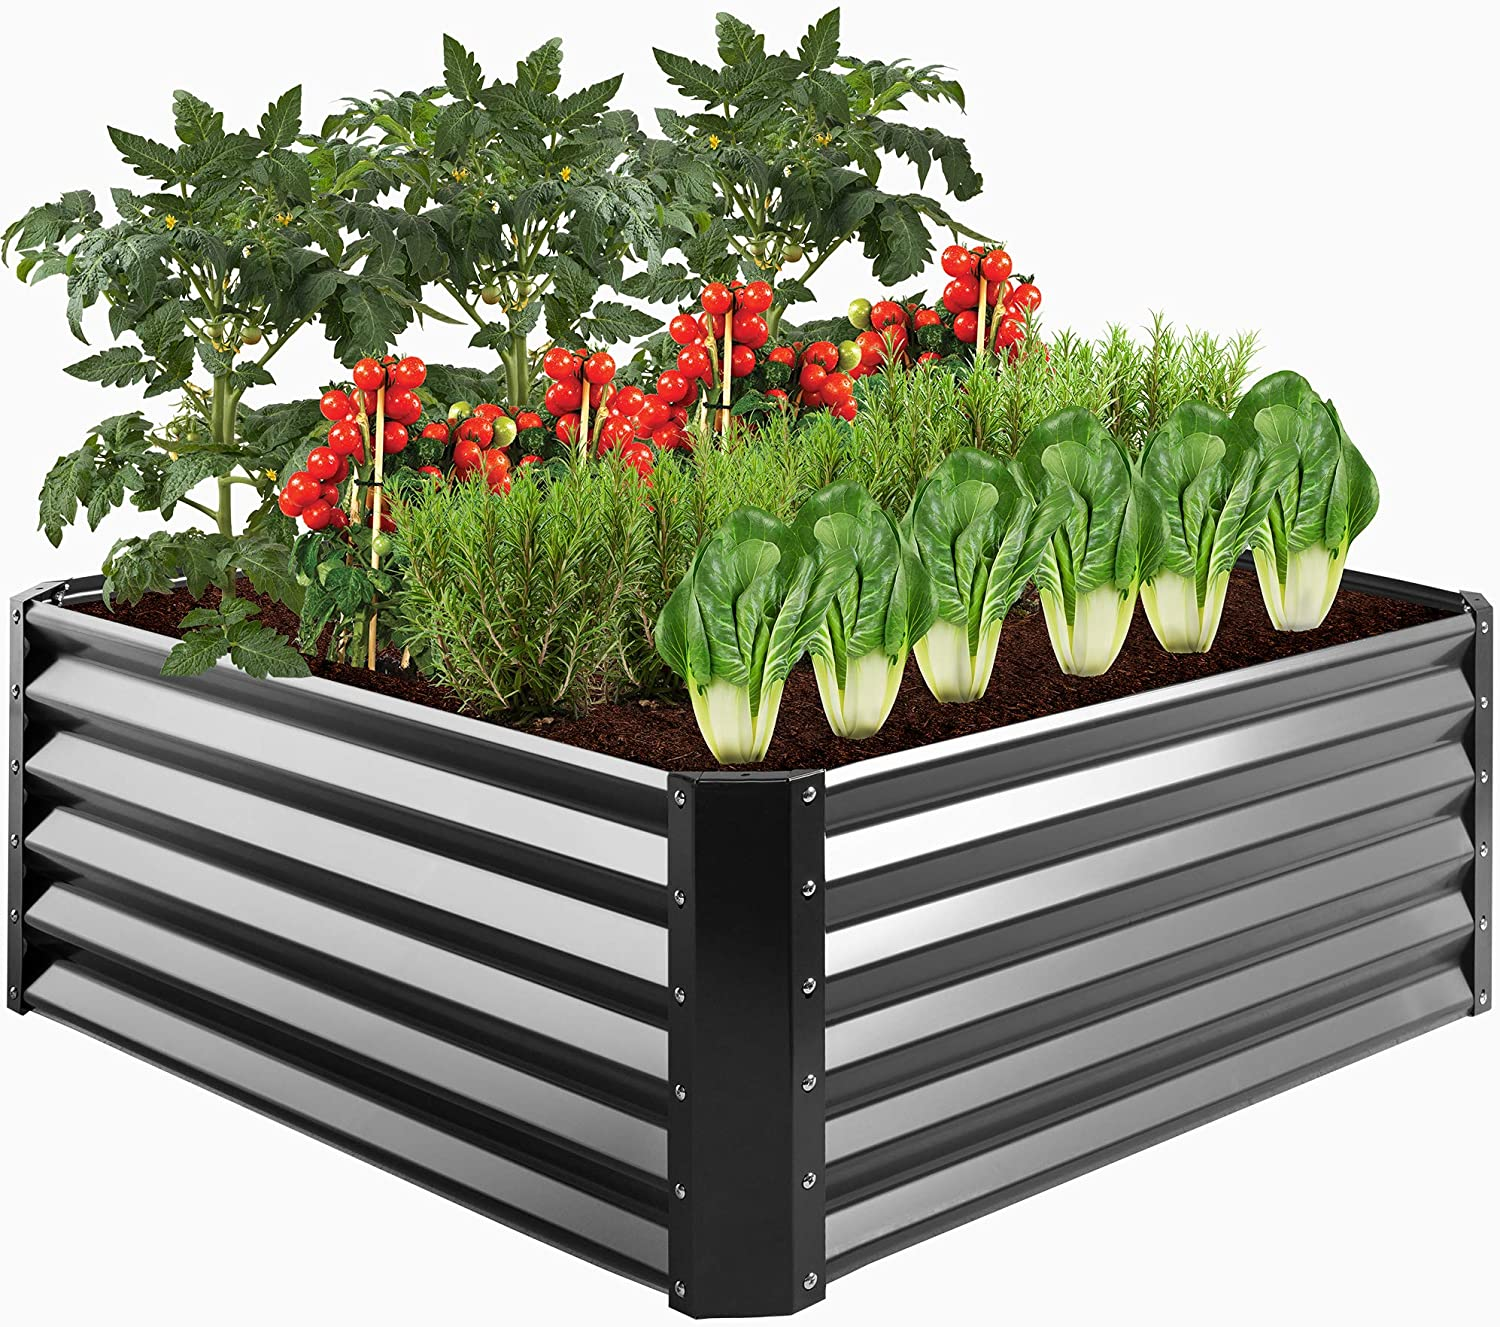 Best Choice Products 4x4x1.5ft Outdoor Metal Raised Garden Bed, Medium Root Box Planter for Vegetables, Flowers, Herbs, and Succulents w/ 179 Gallon Capacity